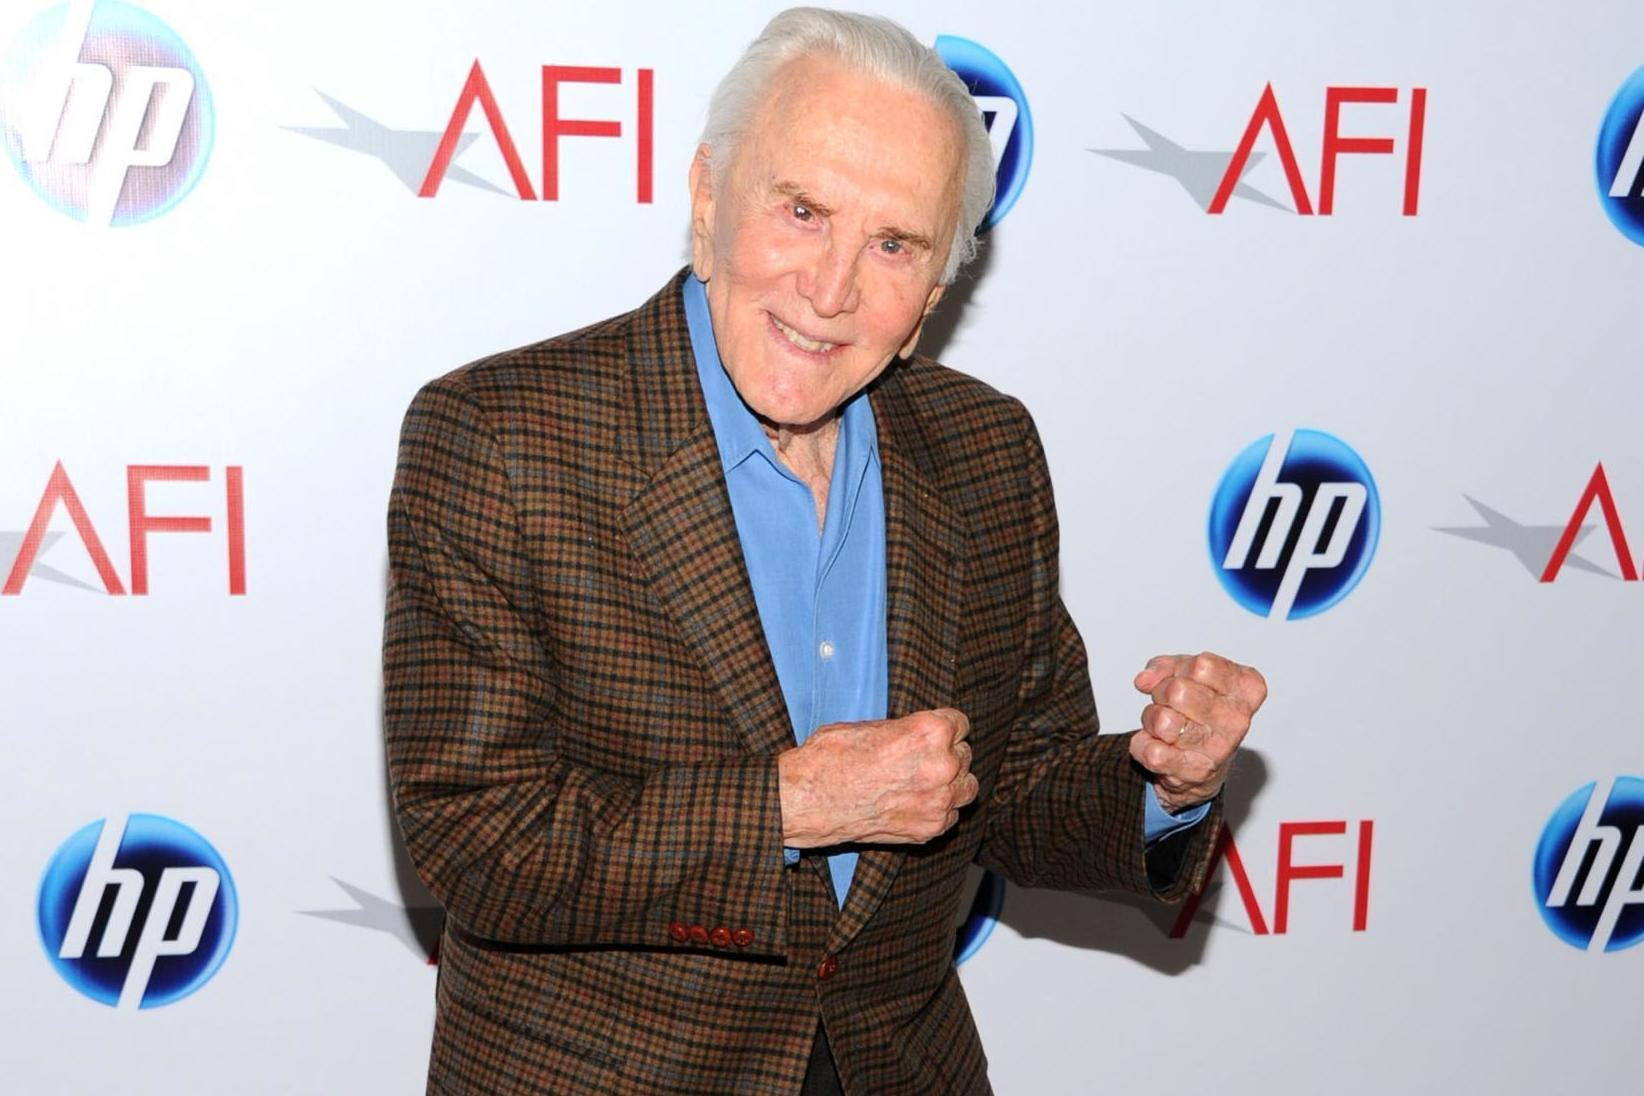 Kirk Douglas leaves 'almost entire $61m fortune to charity'